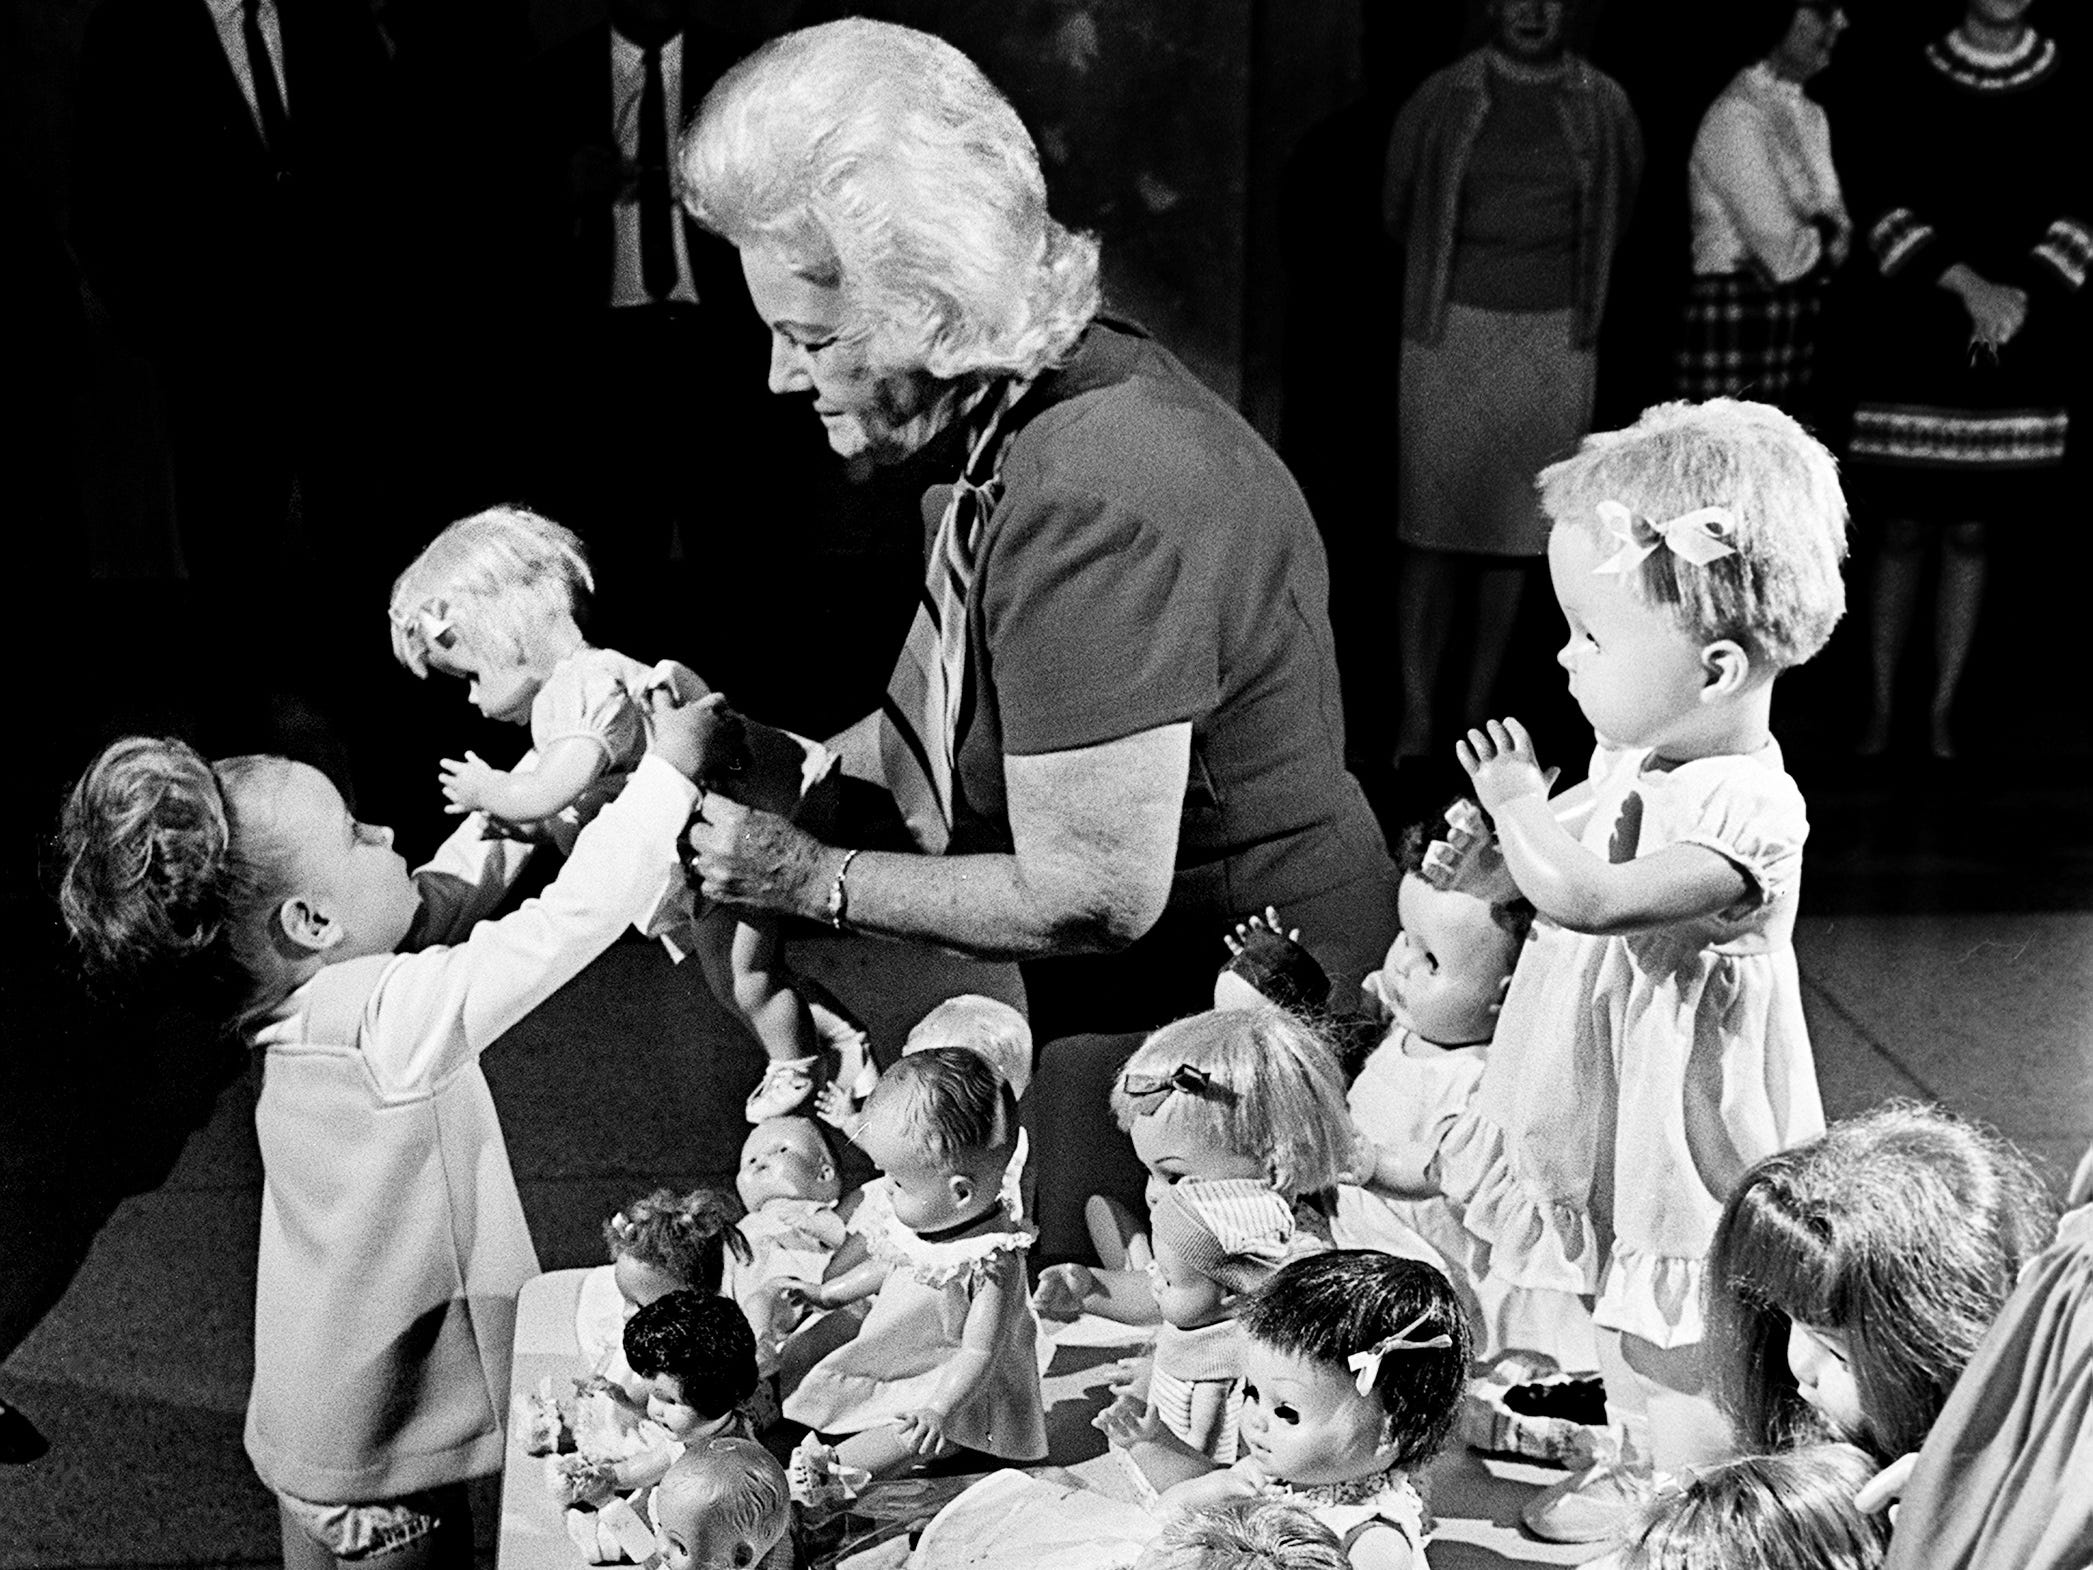 Tammy Lee Spalding, 3, admires a baby doll Nov. 15, 1968 held by Mrs. Burns Schelland, right, who dressed this doll and 21 others for the needy children of Nashville for this Christmas. The girl, daughter of Mr. and Mrs. Donald Spalding of Bonnaside Drive, drew the winning ticket out of more than 400 chances sold on a Barbie doll wardrobe to raise money for the project.